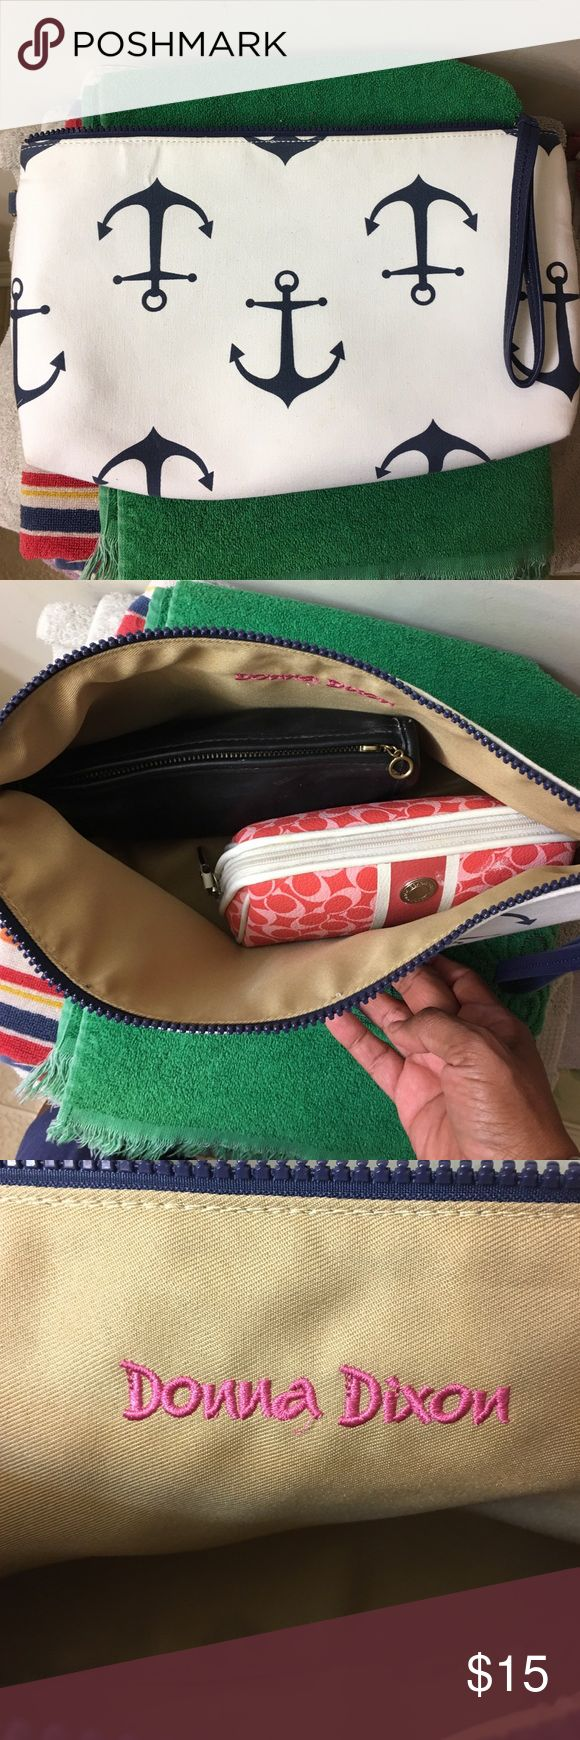 Medium size Nautical Clutch Bag Cute Medium sized Nautical clutch bag with Large deep Blue anchors ⚓️ on a White bag. Bag will fit keys; cosmetic bag; cell phone 📱;comb/brush, etc. Designer name: Donna Dixon. Donna Dixon Accessories